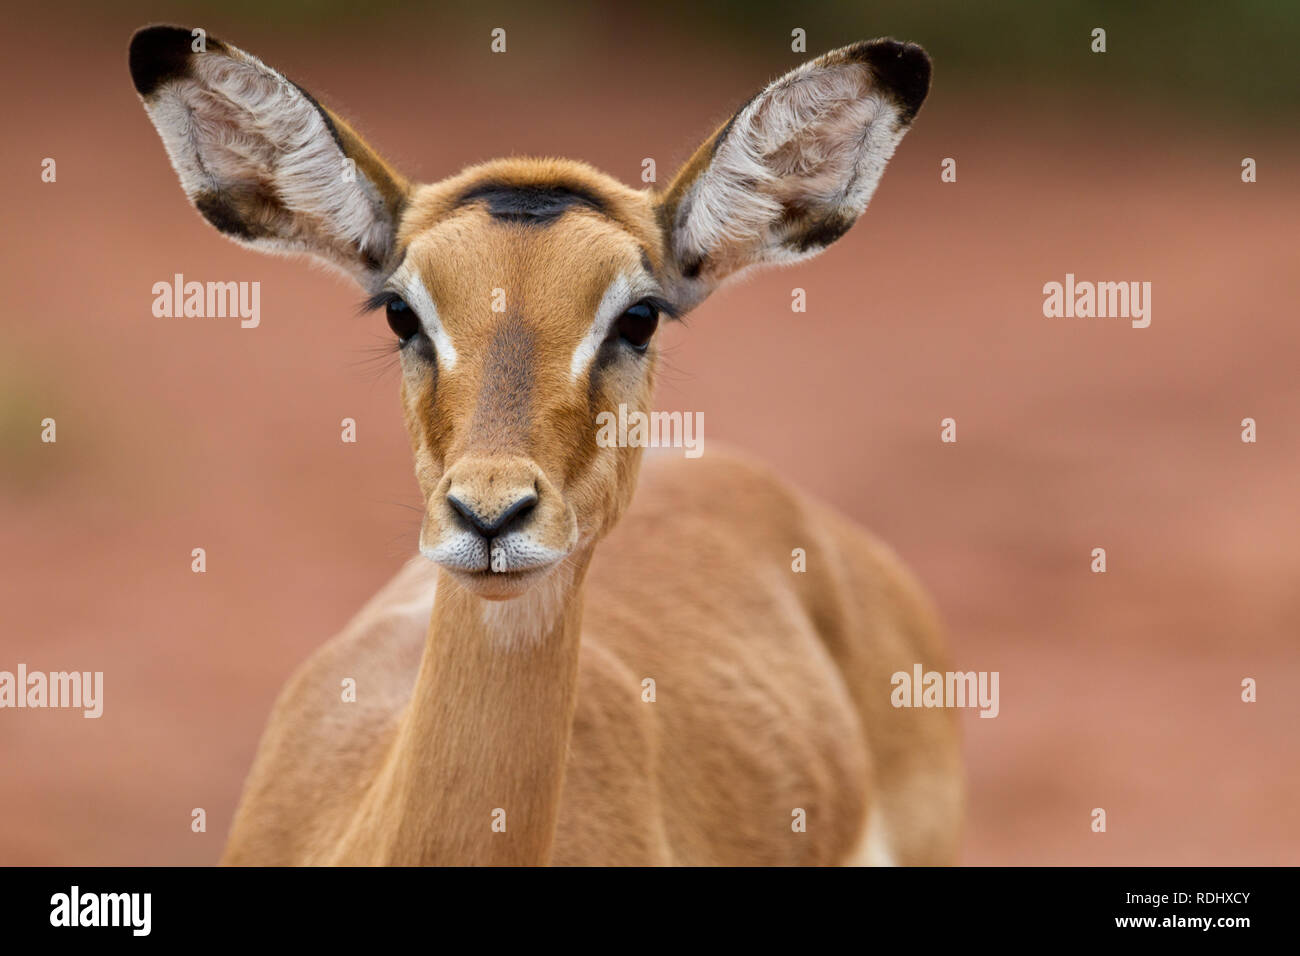 Impala, Aepyceros melampus, in Akagera National Park, Parc National de l'Akagera, Eastern Province, Rwanda, which is a recovering conservation area. - Stock Image